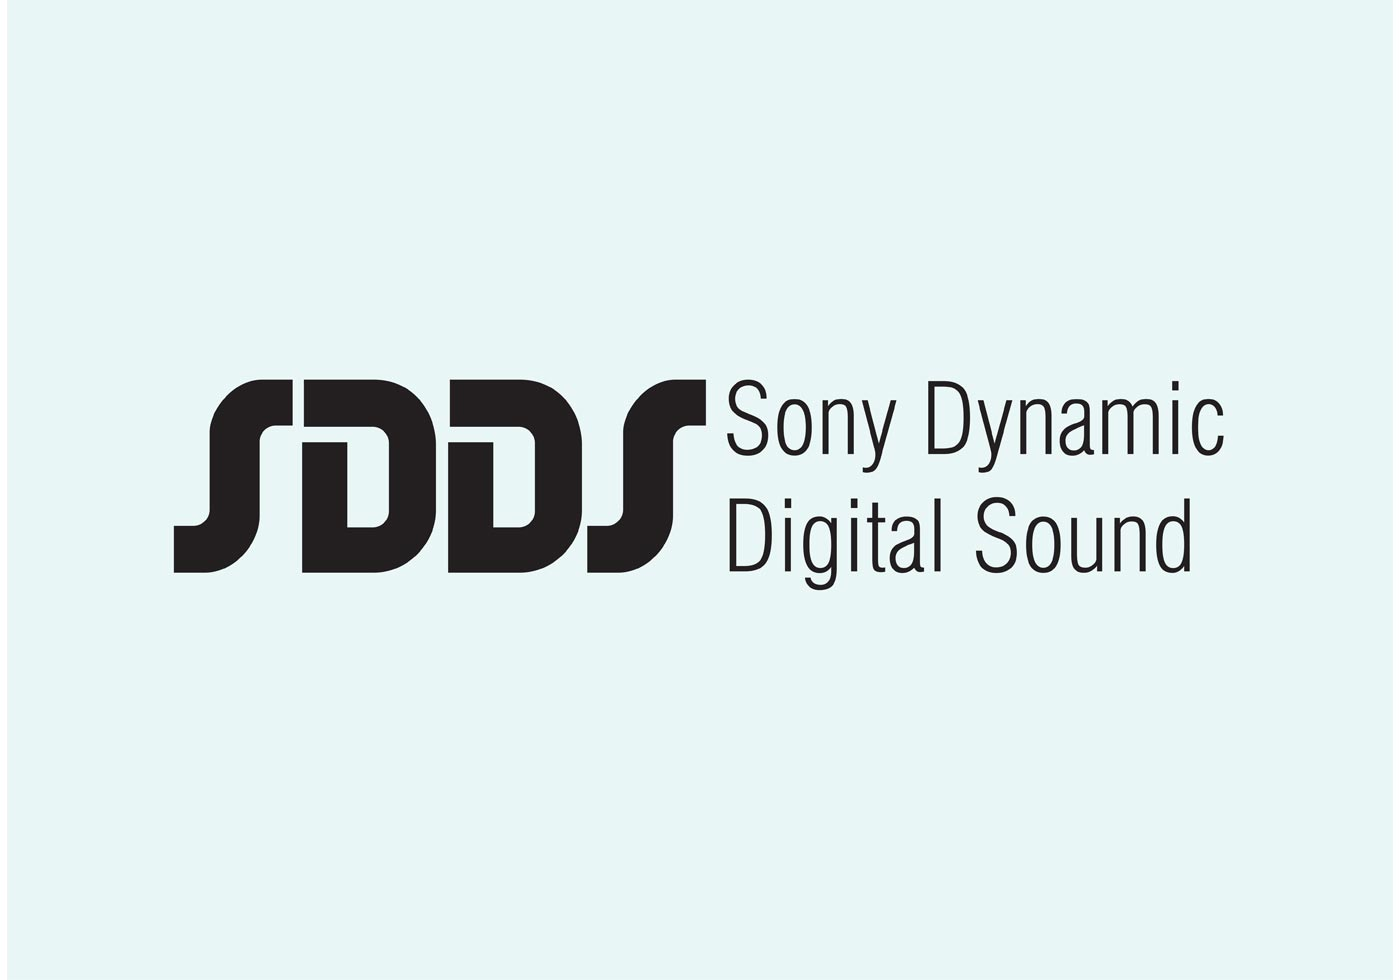 sony dynamic digital sound download free vector art